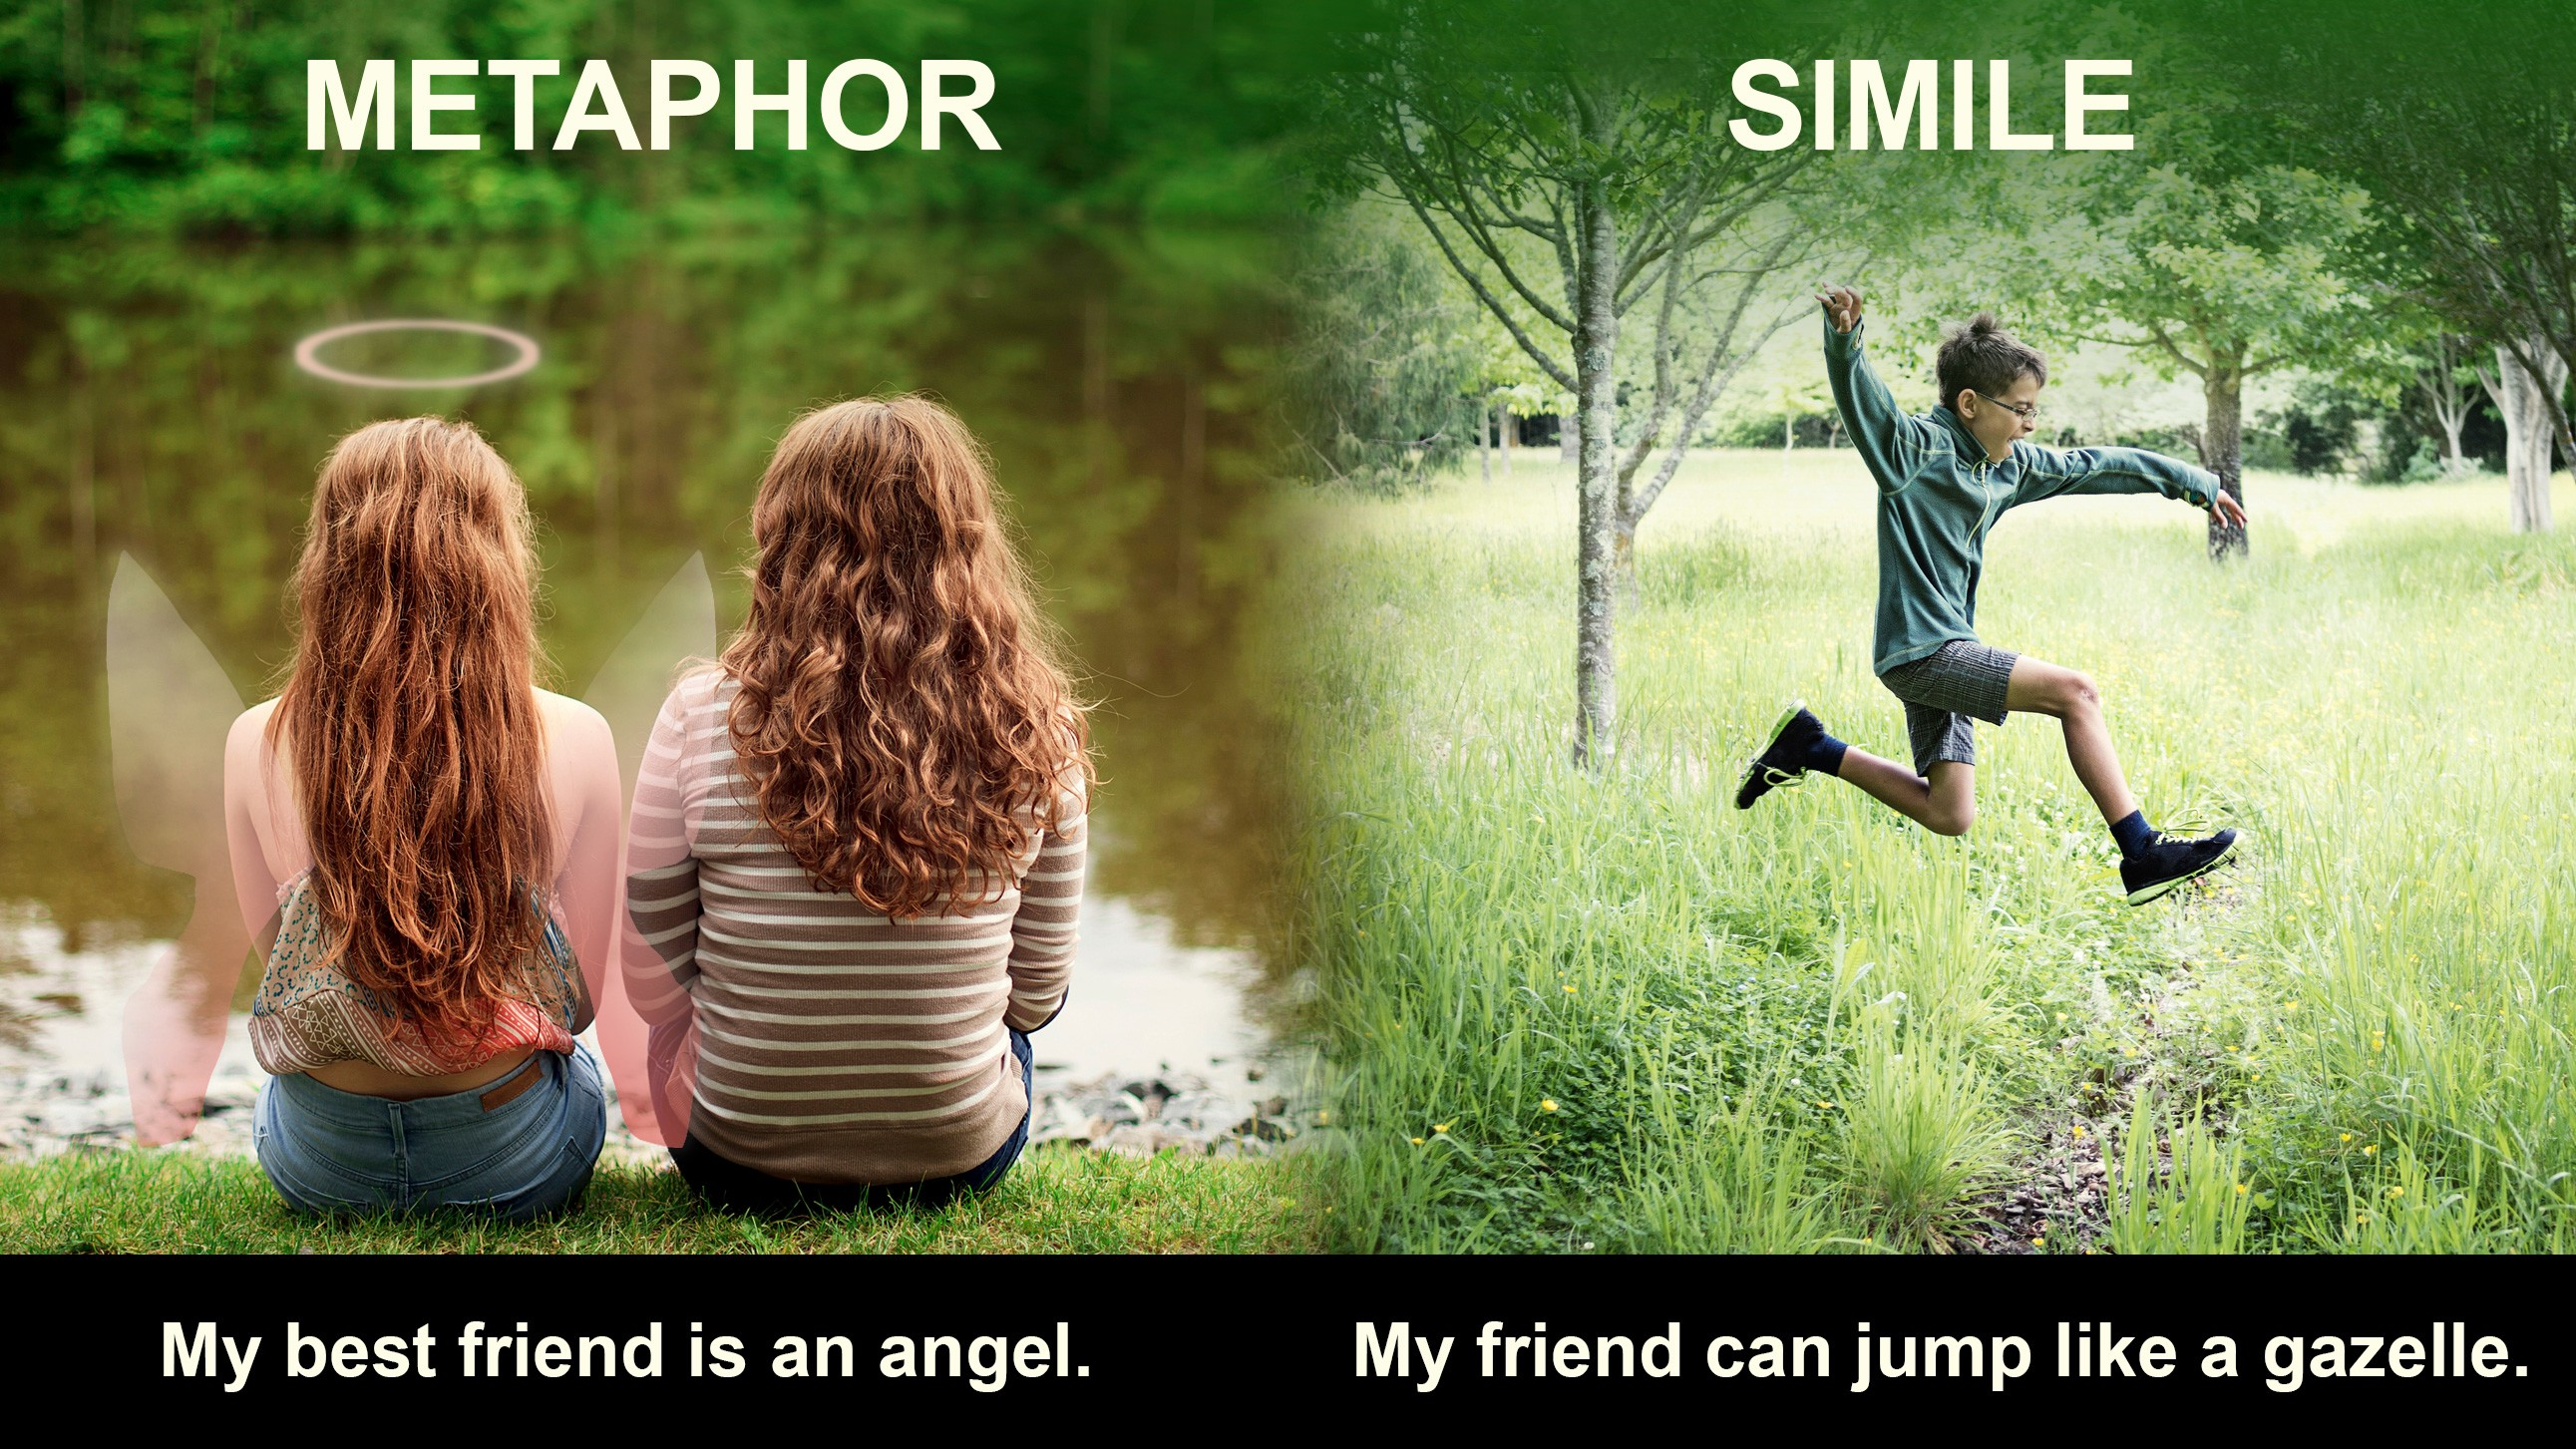 difference between metaphor and simile example